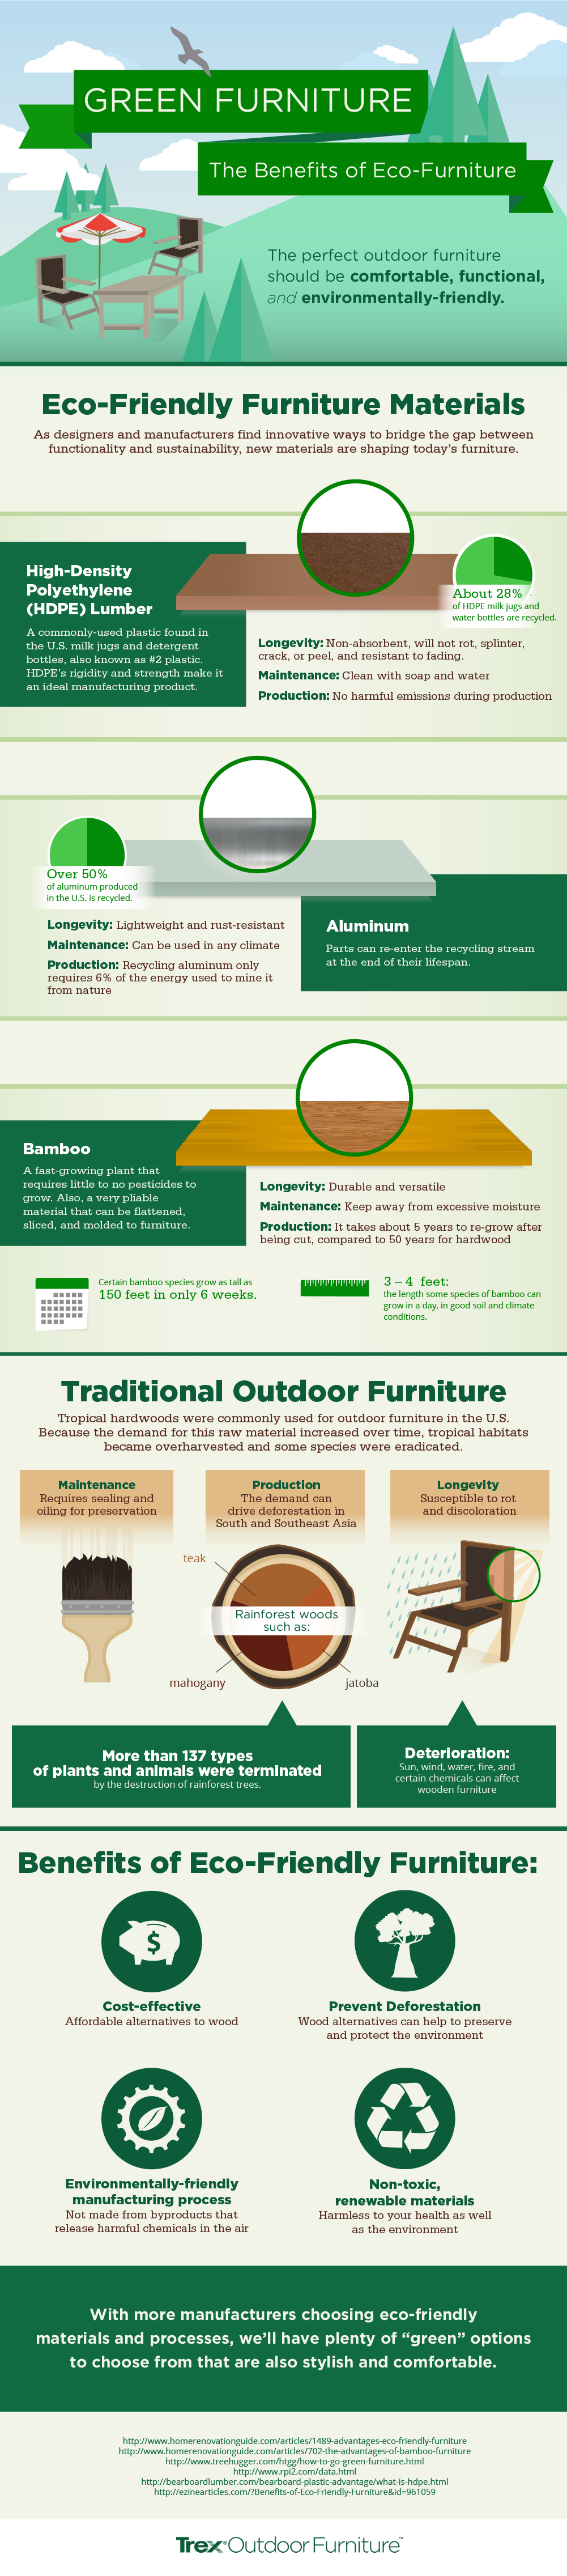 green-furniture-infographic-trex-outdoor-furniture